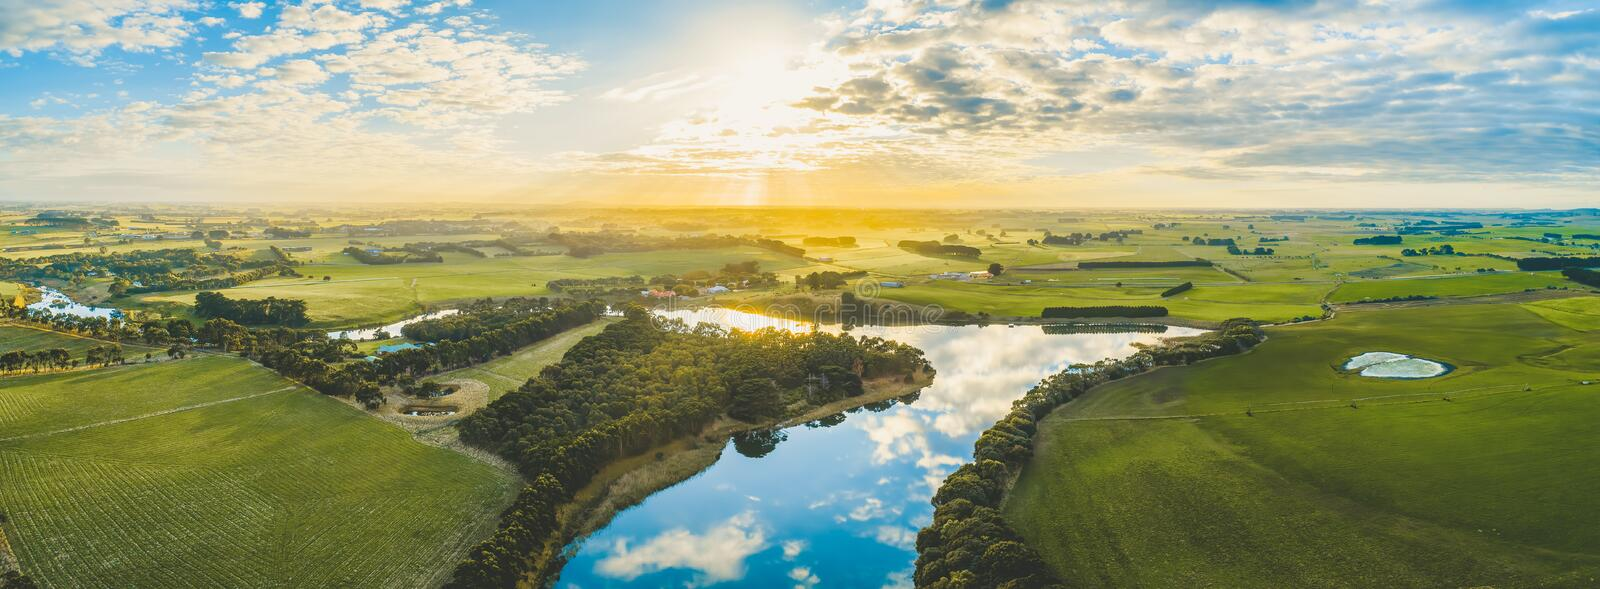 Sun setting over scenic Australian countryside grasslands and pastures with river passing through. stock image